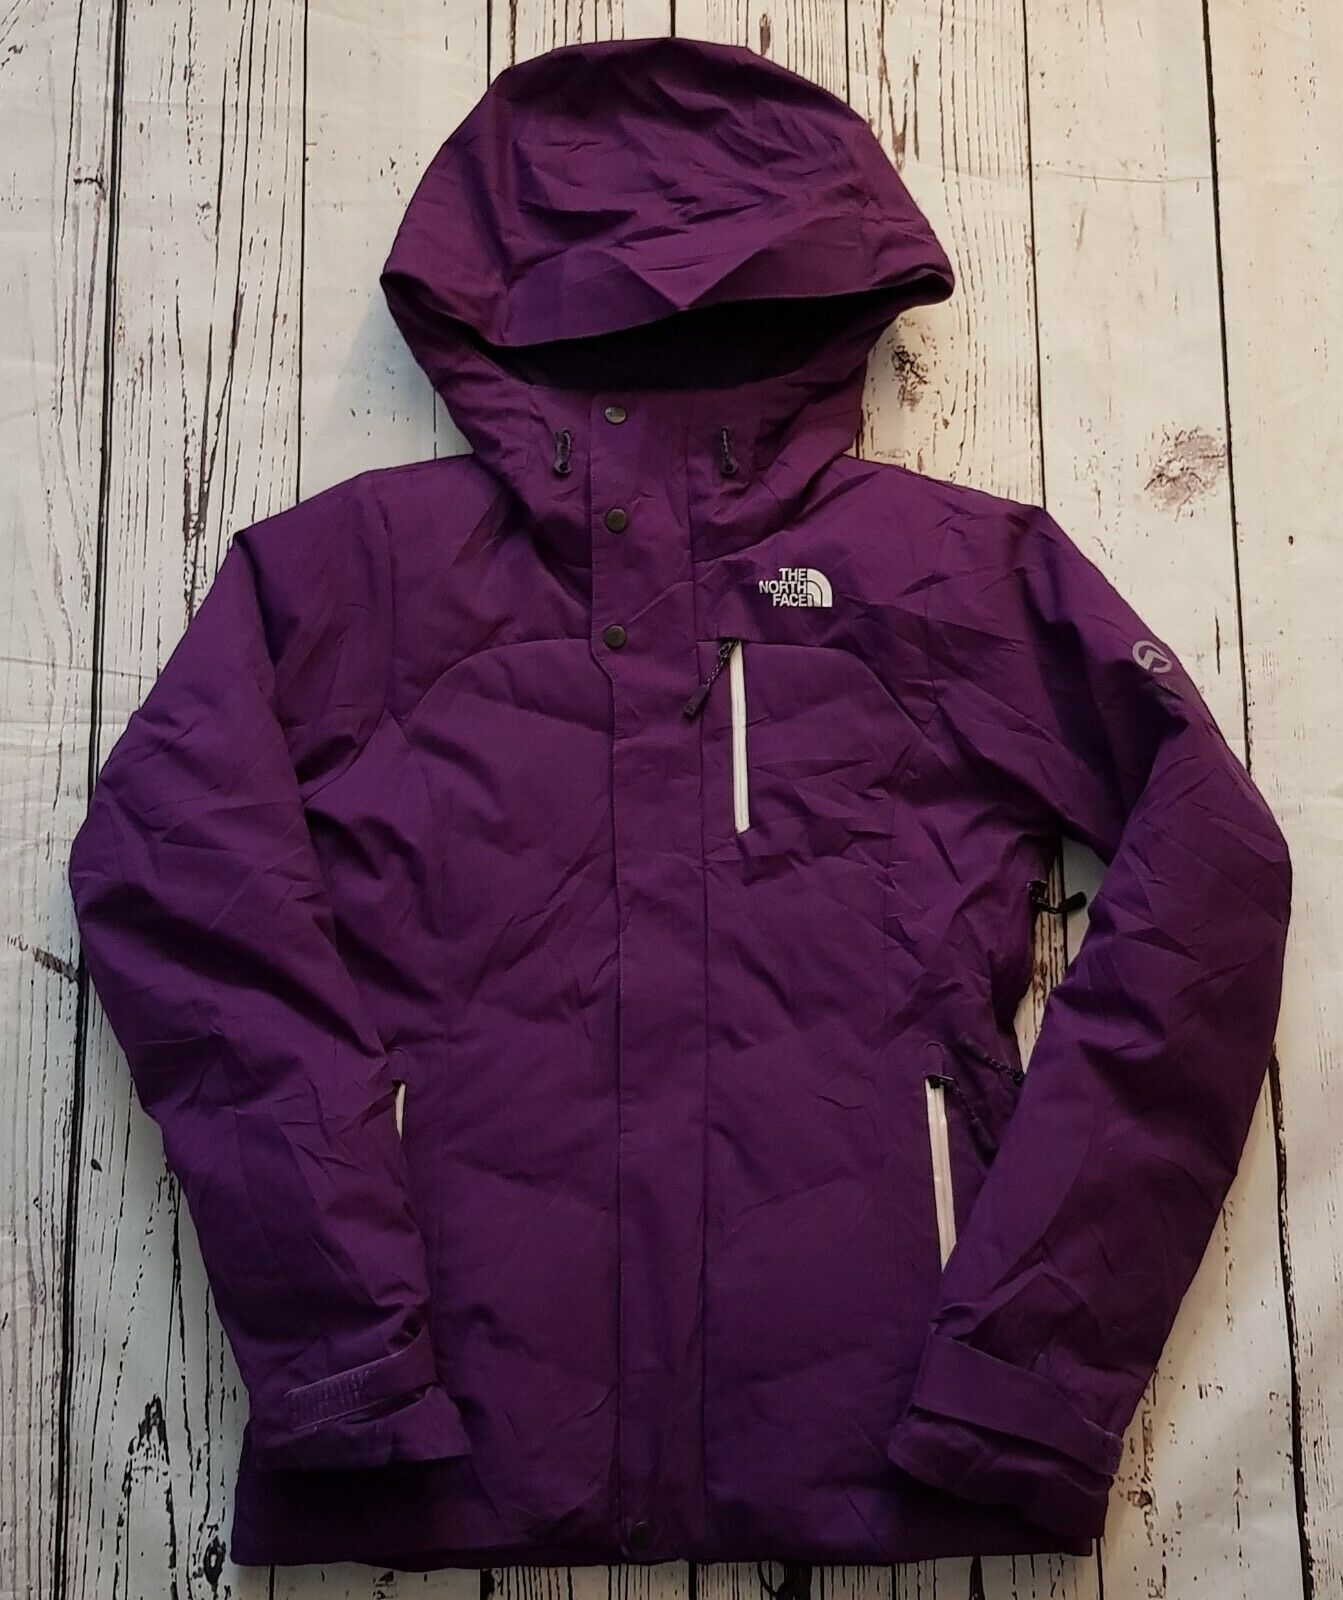 Womens The North Face Summit Series Purple Recco Down Jacket Size XS Excellent